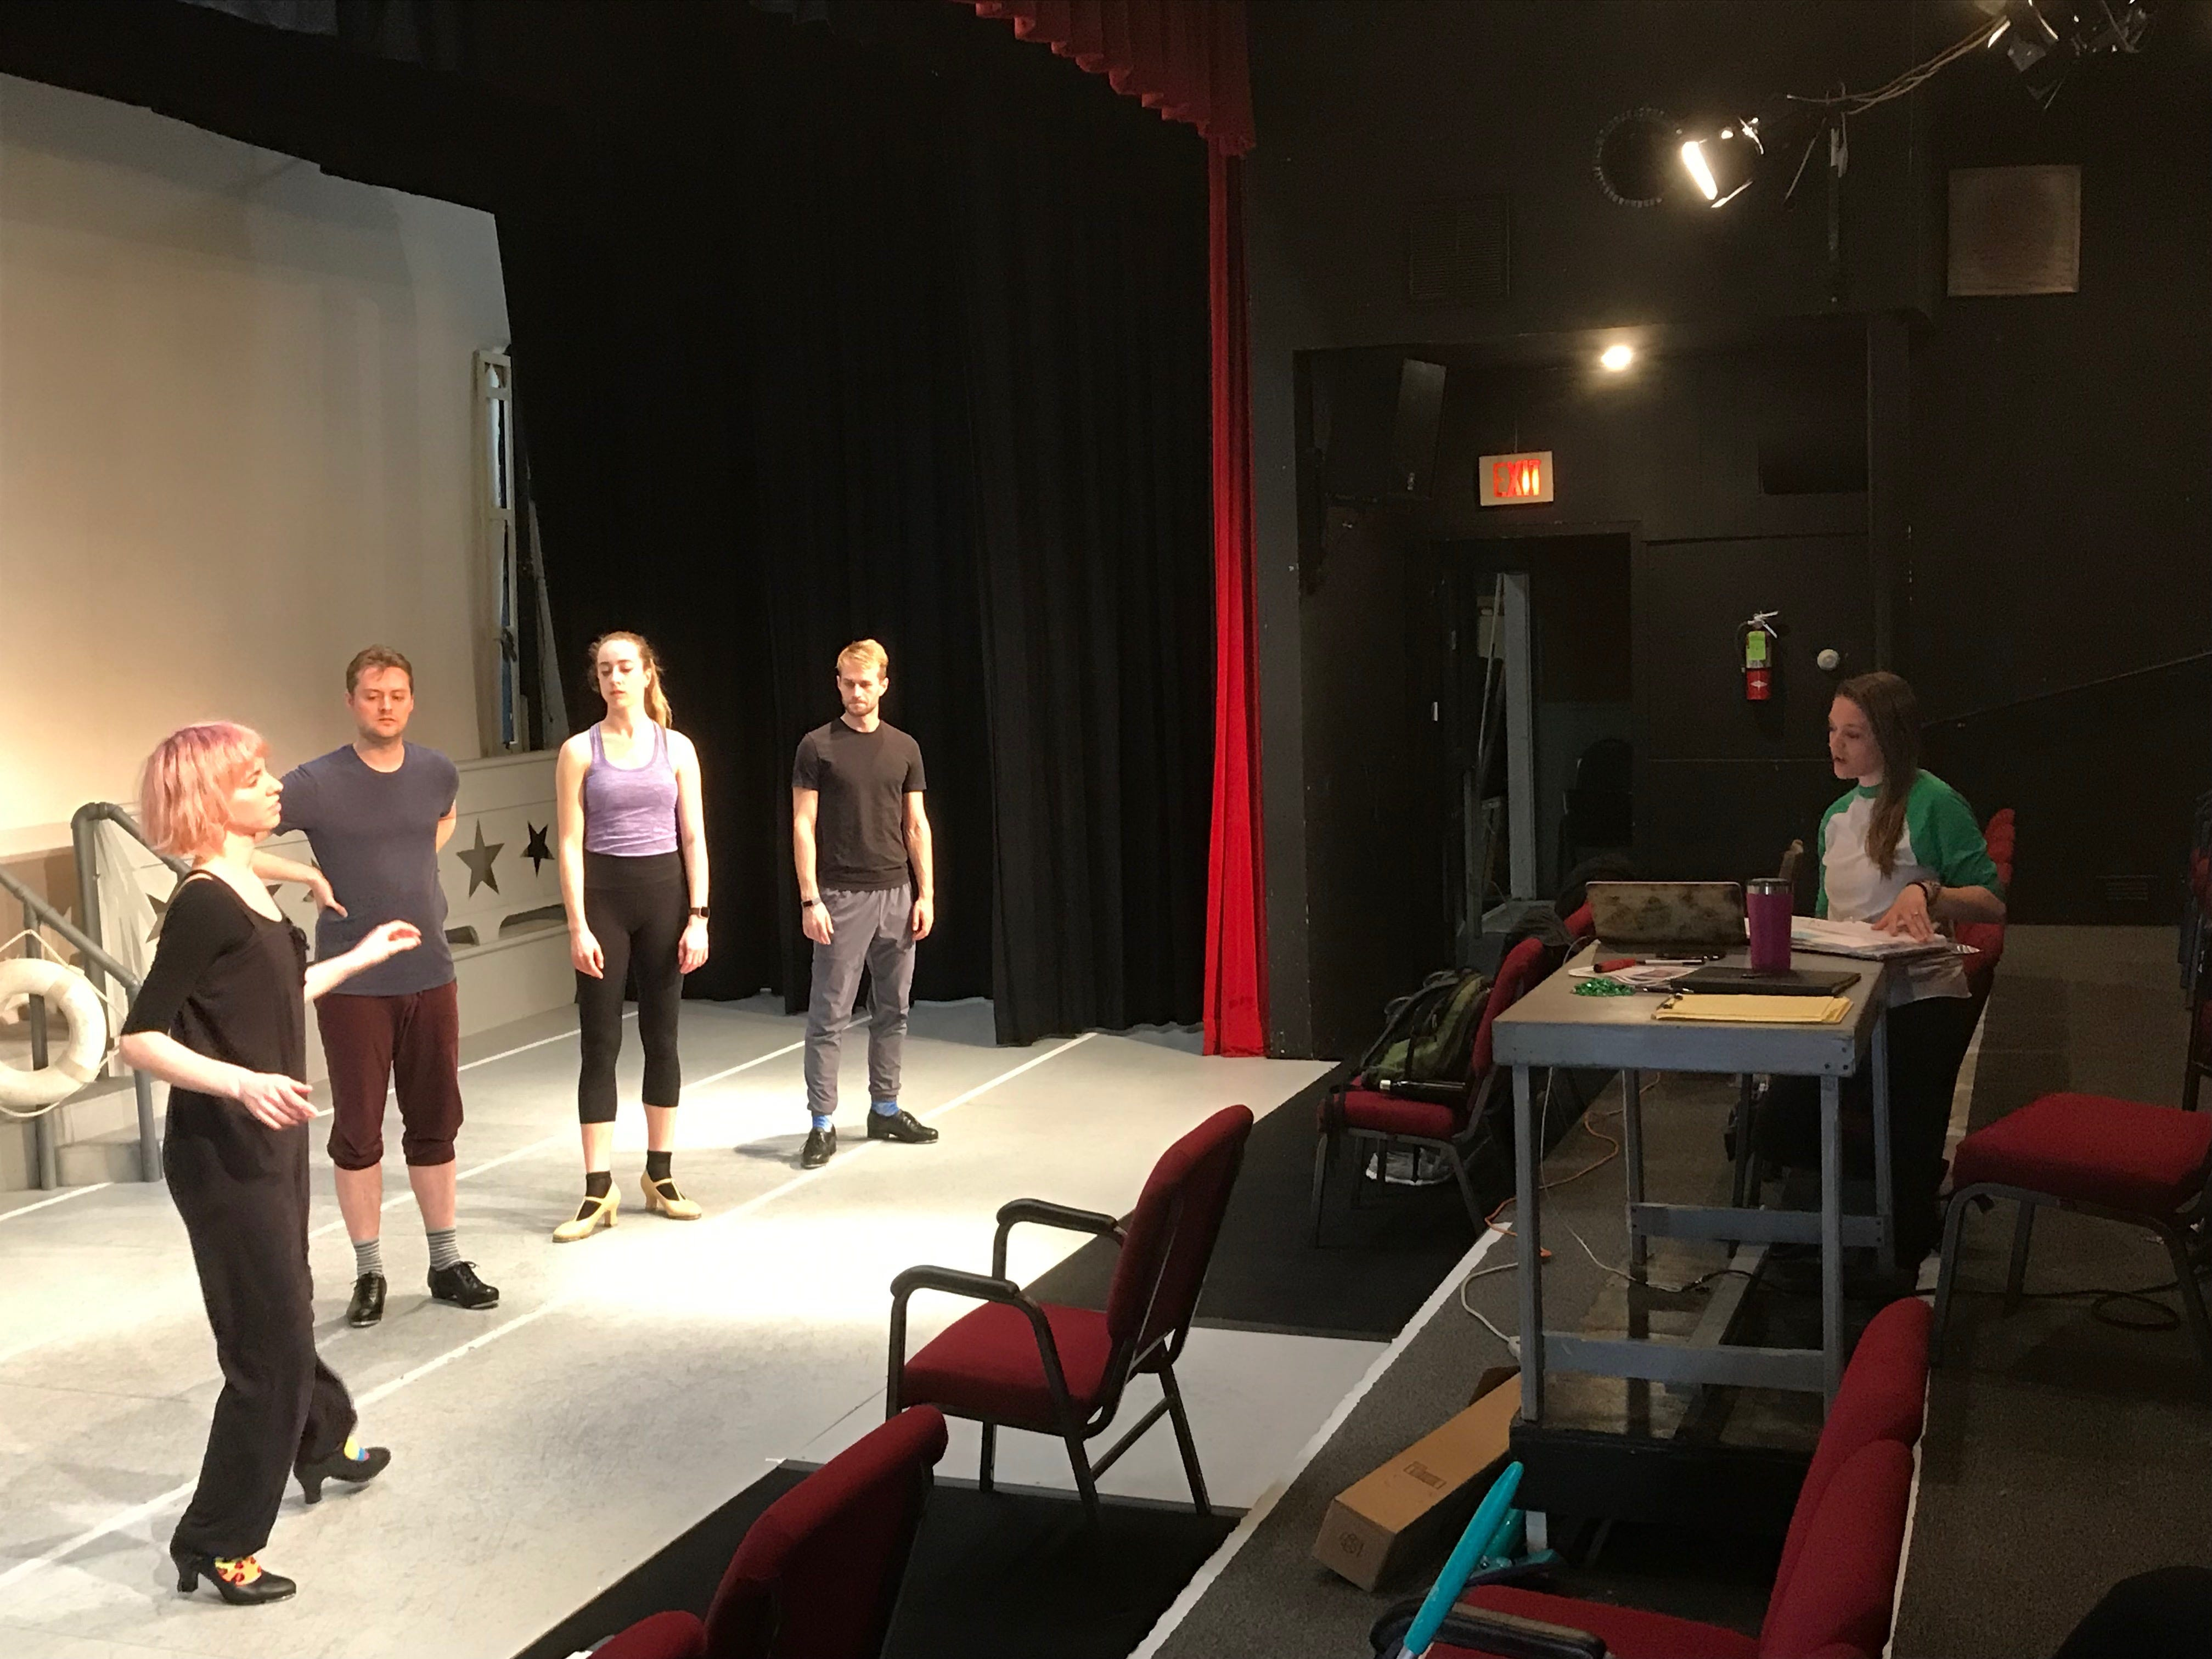 Choreographer Emily Price, far right, directs actors as they rehearse a number for 'Dames at Sea,' a tap dance, musical comedy, on Thursday, March 14, 2019.  The musical will be performed at North Street Playhouse in Onancock, Virginia starting on Thursday, March 21, 2019.